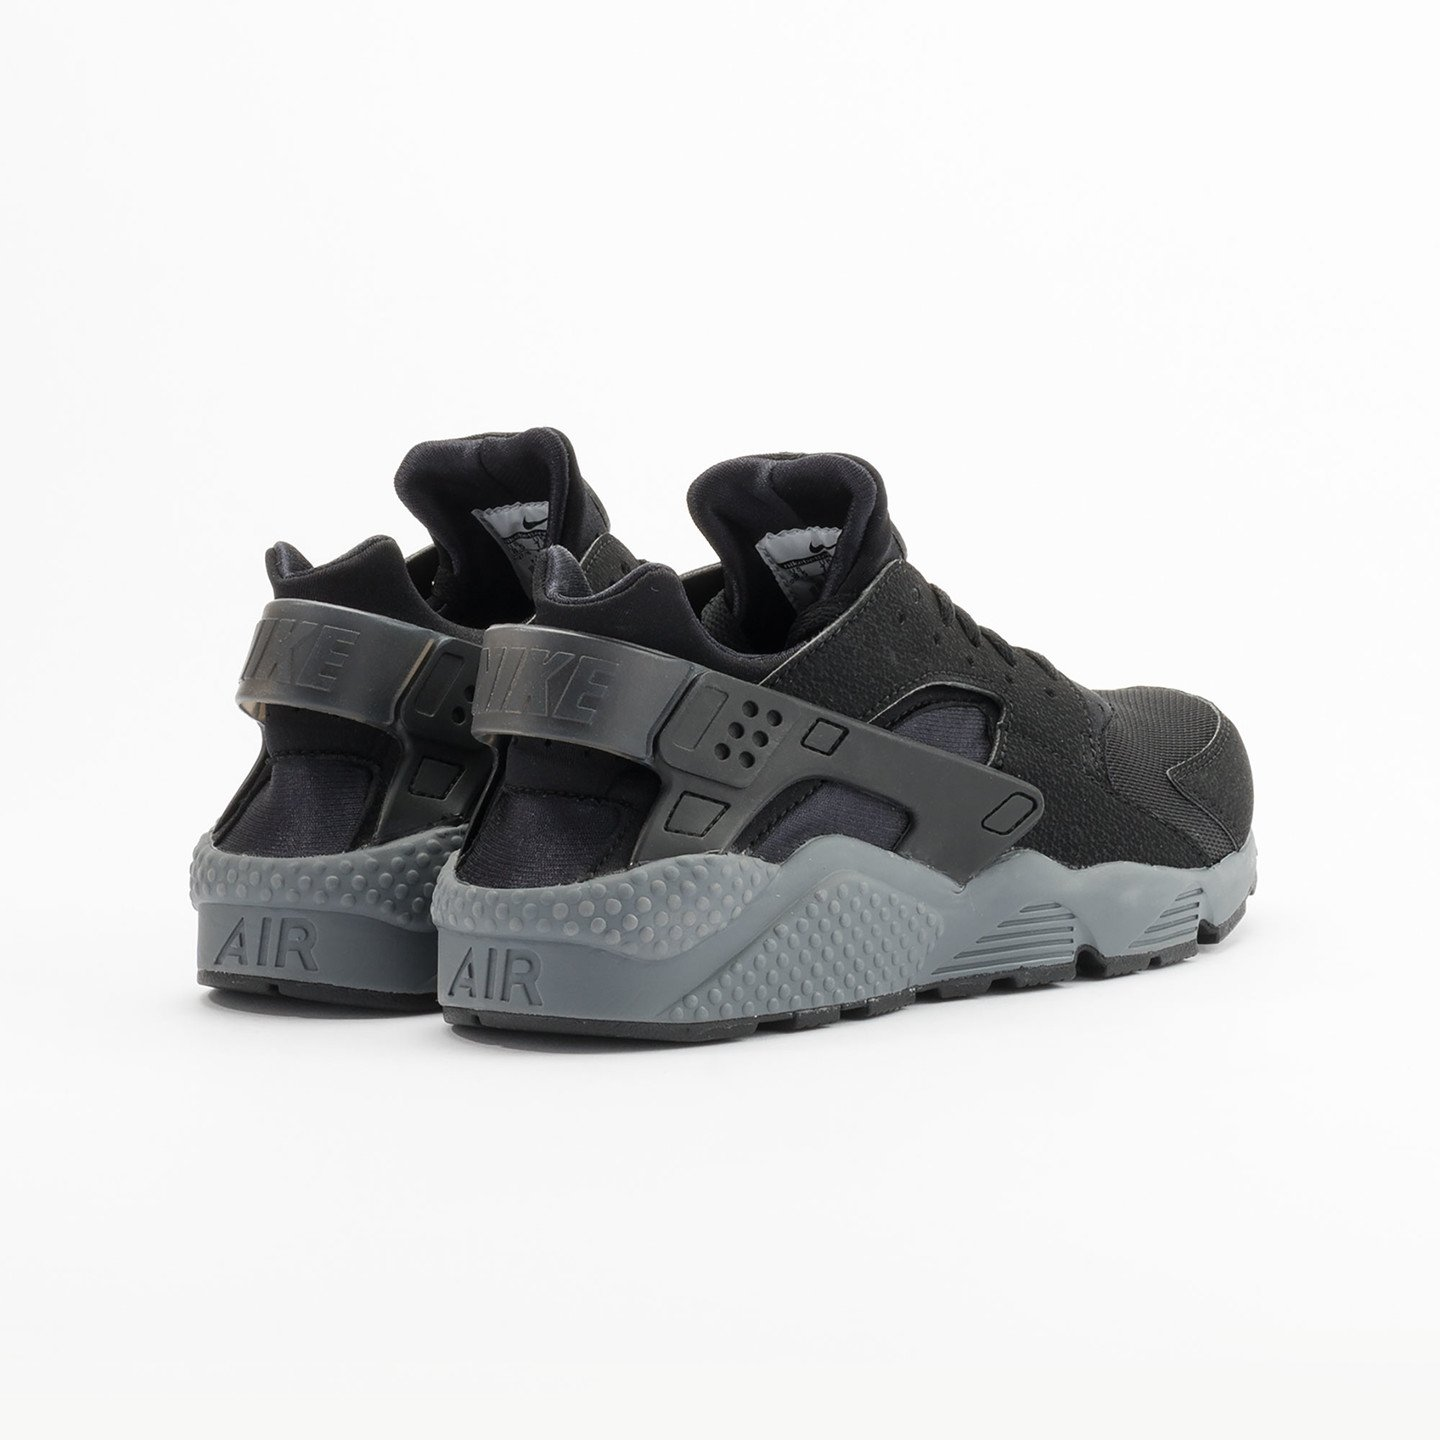 Nike Air Huarache Black / Dark Grey 318429-010-42